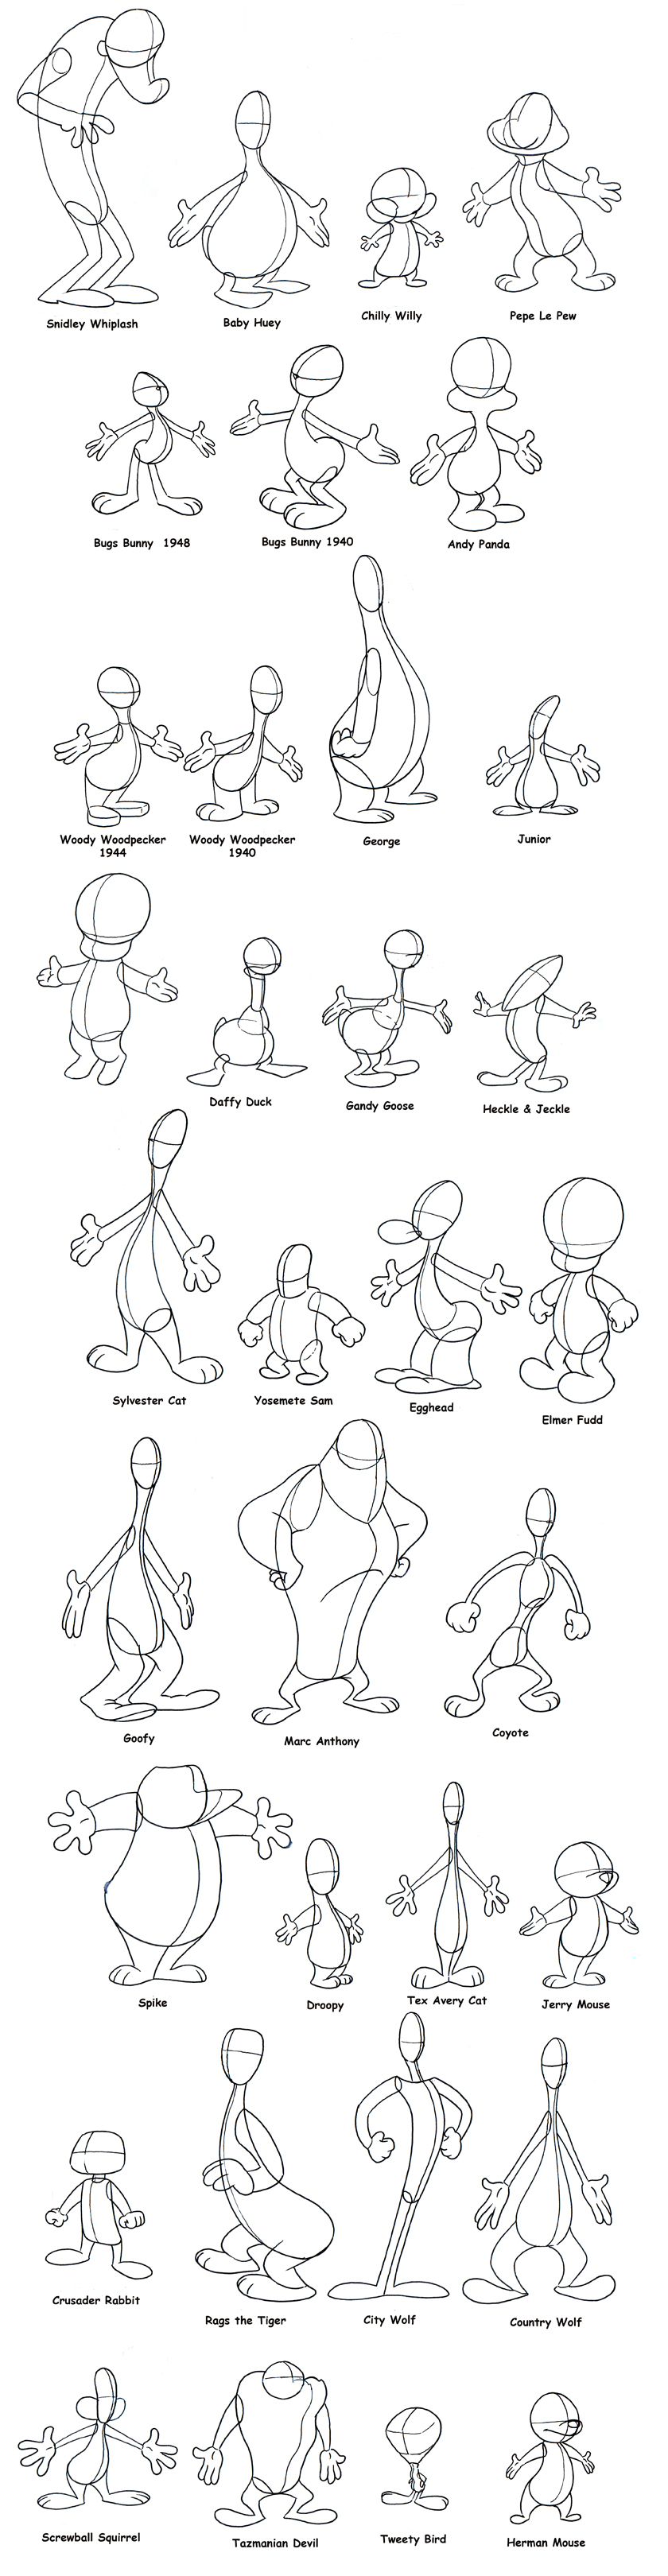 Character Design Basic Shapes : Lip sync and character animation